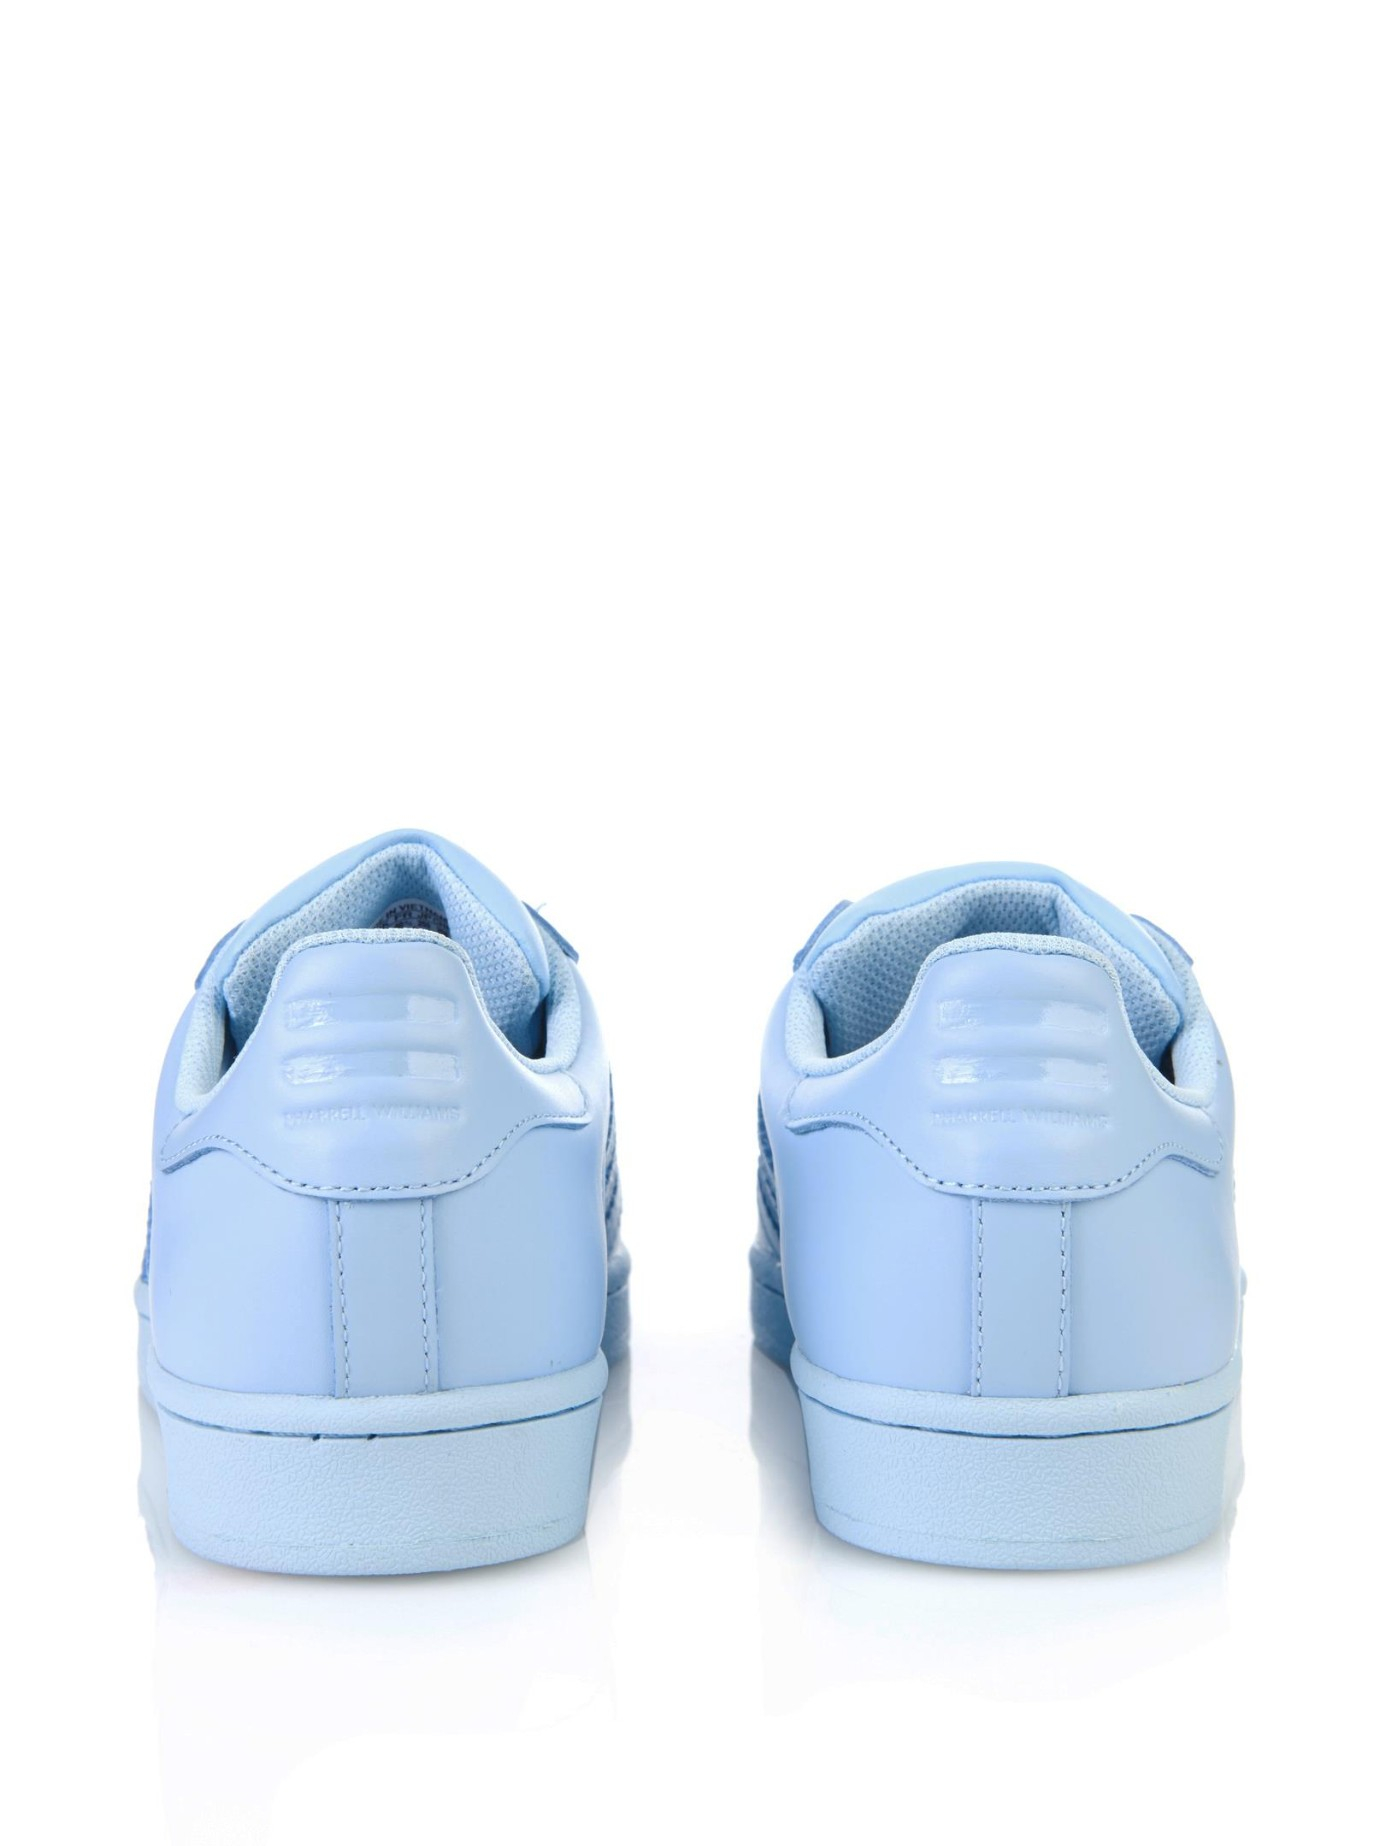 adidas superstar light blue